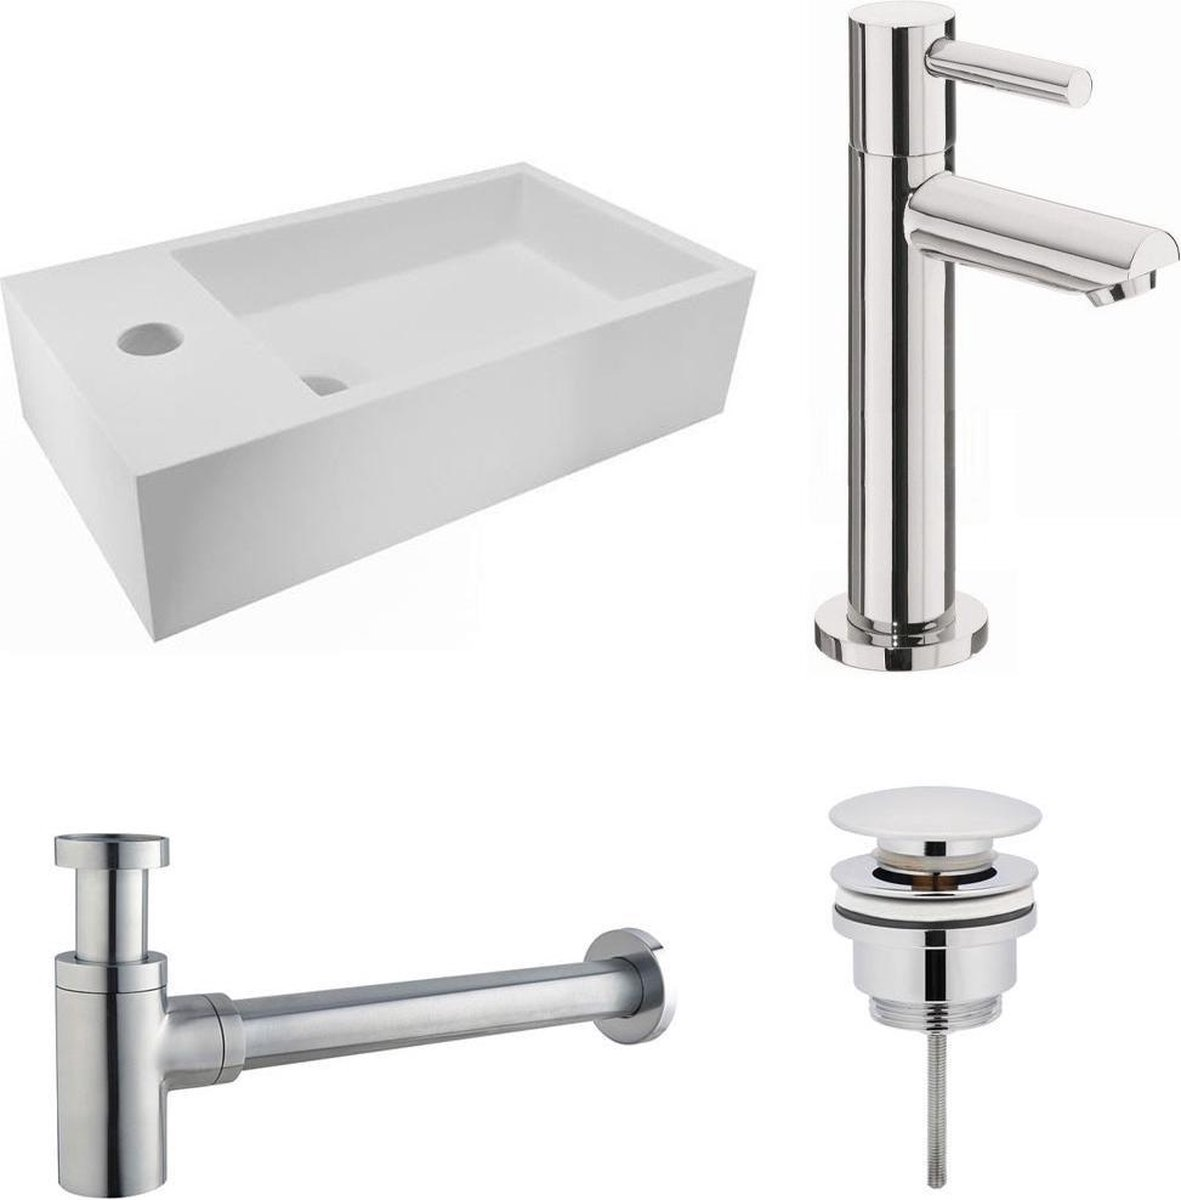 Fonteinset Nila Solid Surface Links Mat Wit 40x22x10cm Toiletkraan Hendel Clickwaste Sifon Chroom